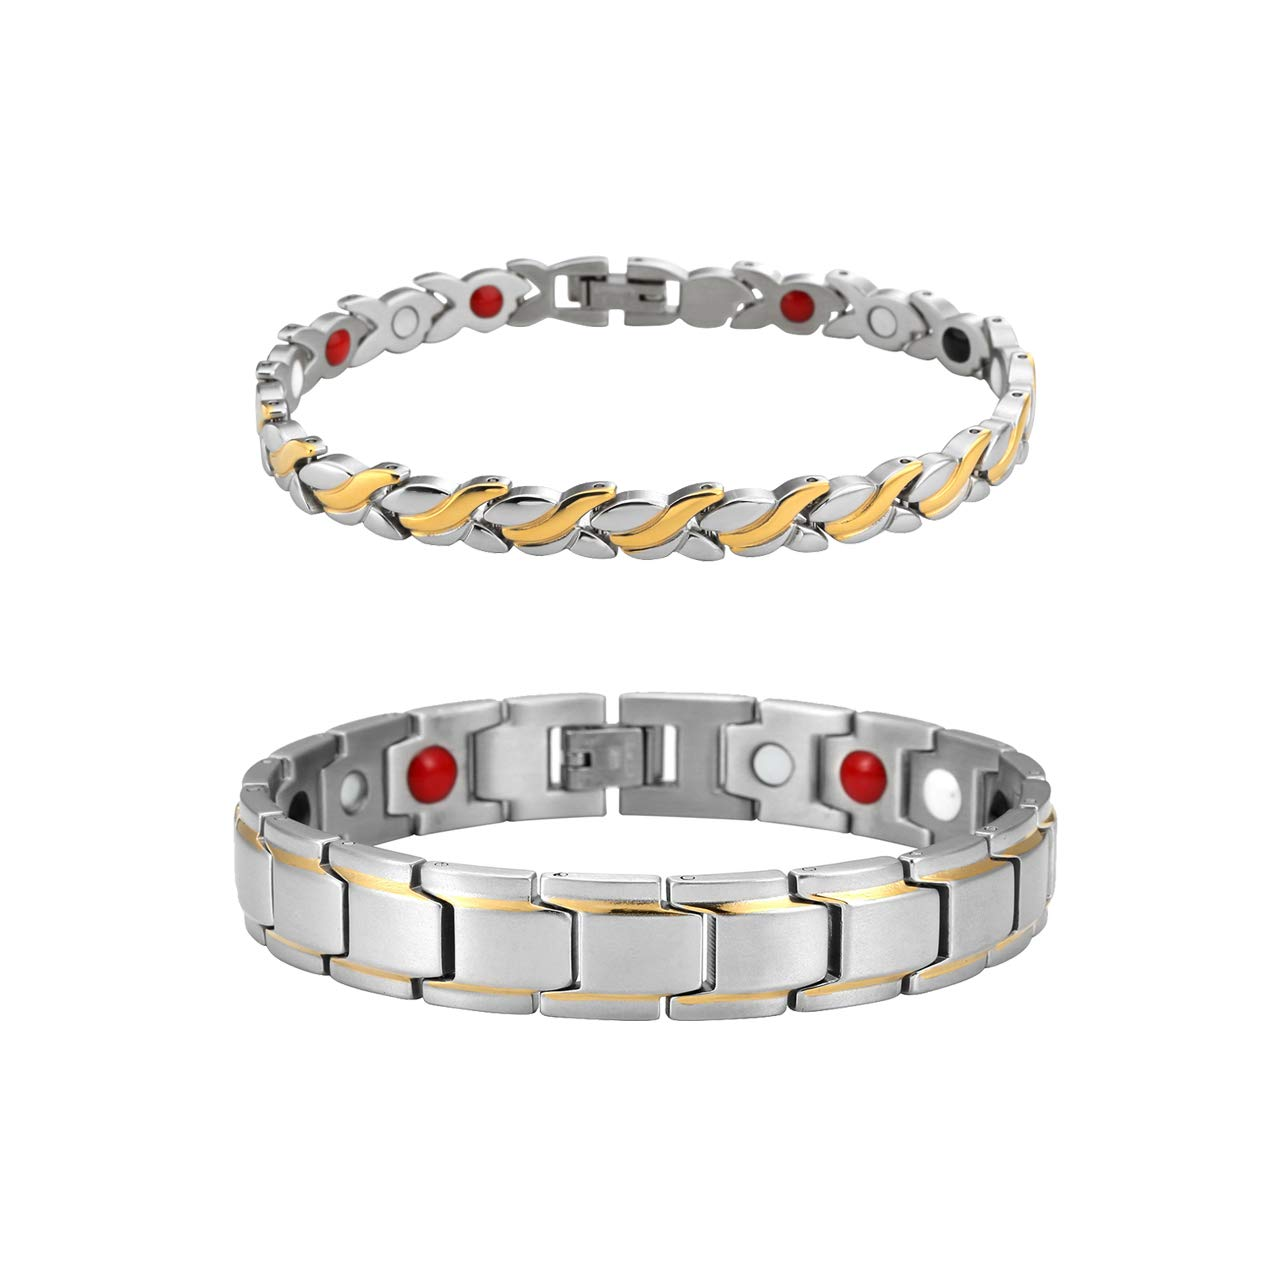 Zysta 2PCS Magnetic 4 Elements Bracelets Titanium Blood Sleep Improve Relax Pain Reduce Stainless Steel Couples Families Cuff Bagnle Wristband with Adjustable Kit